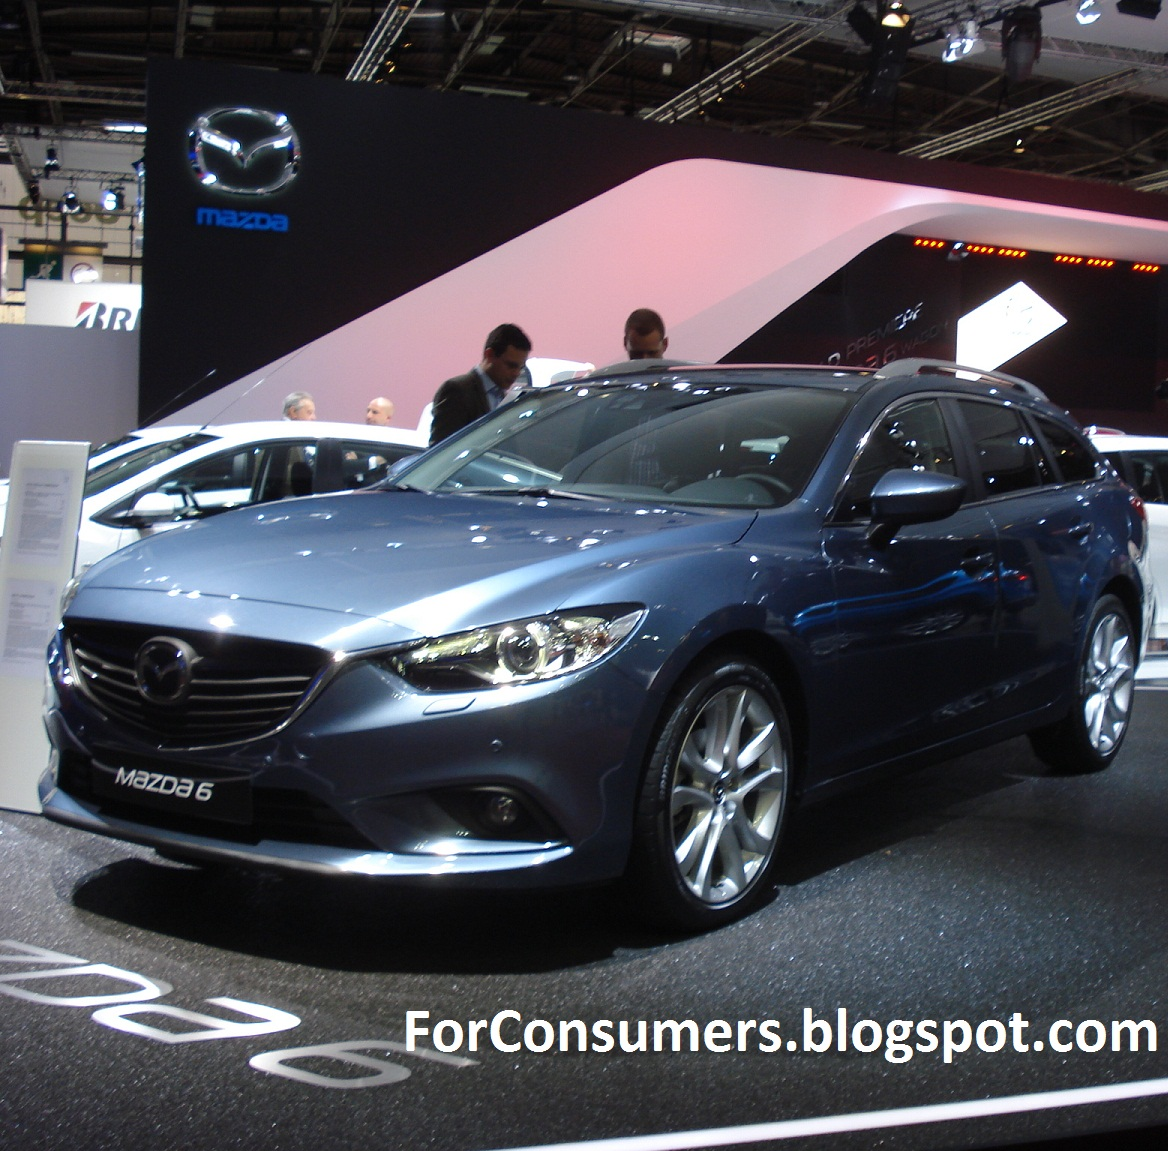 New Mazda 6 2013 Estate And Sedan Car Review